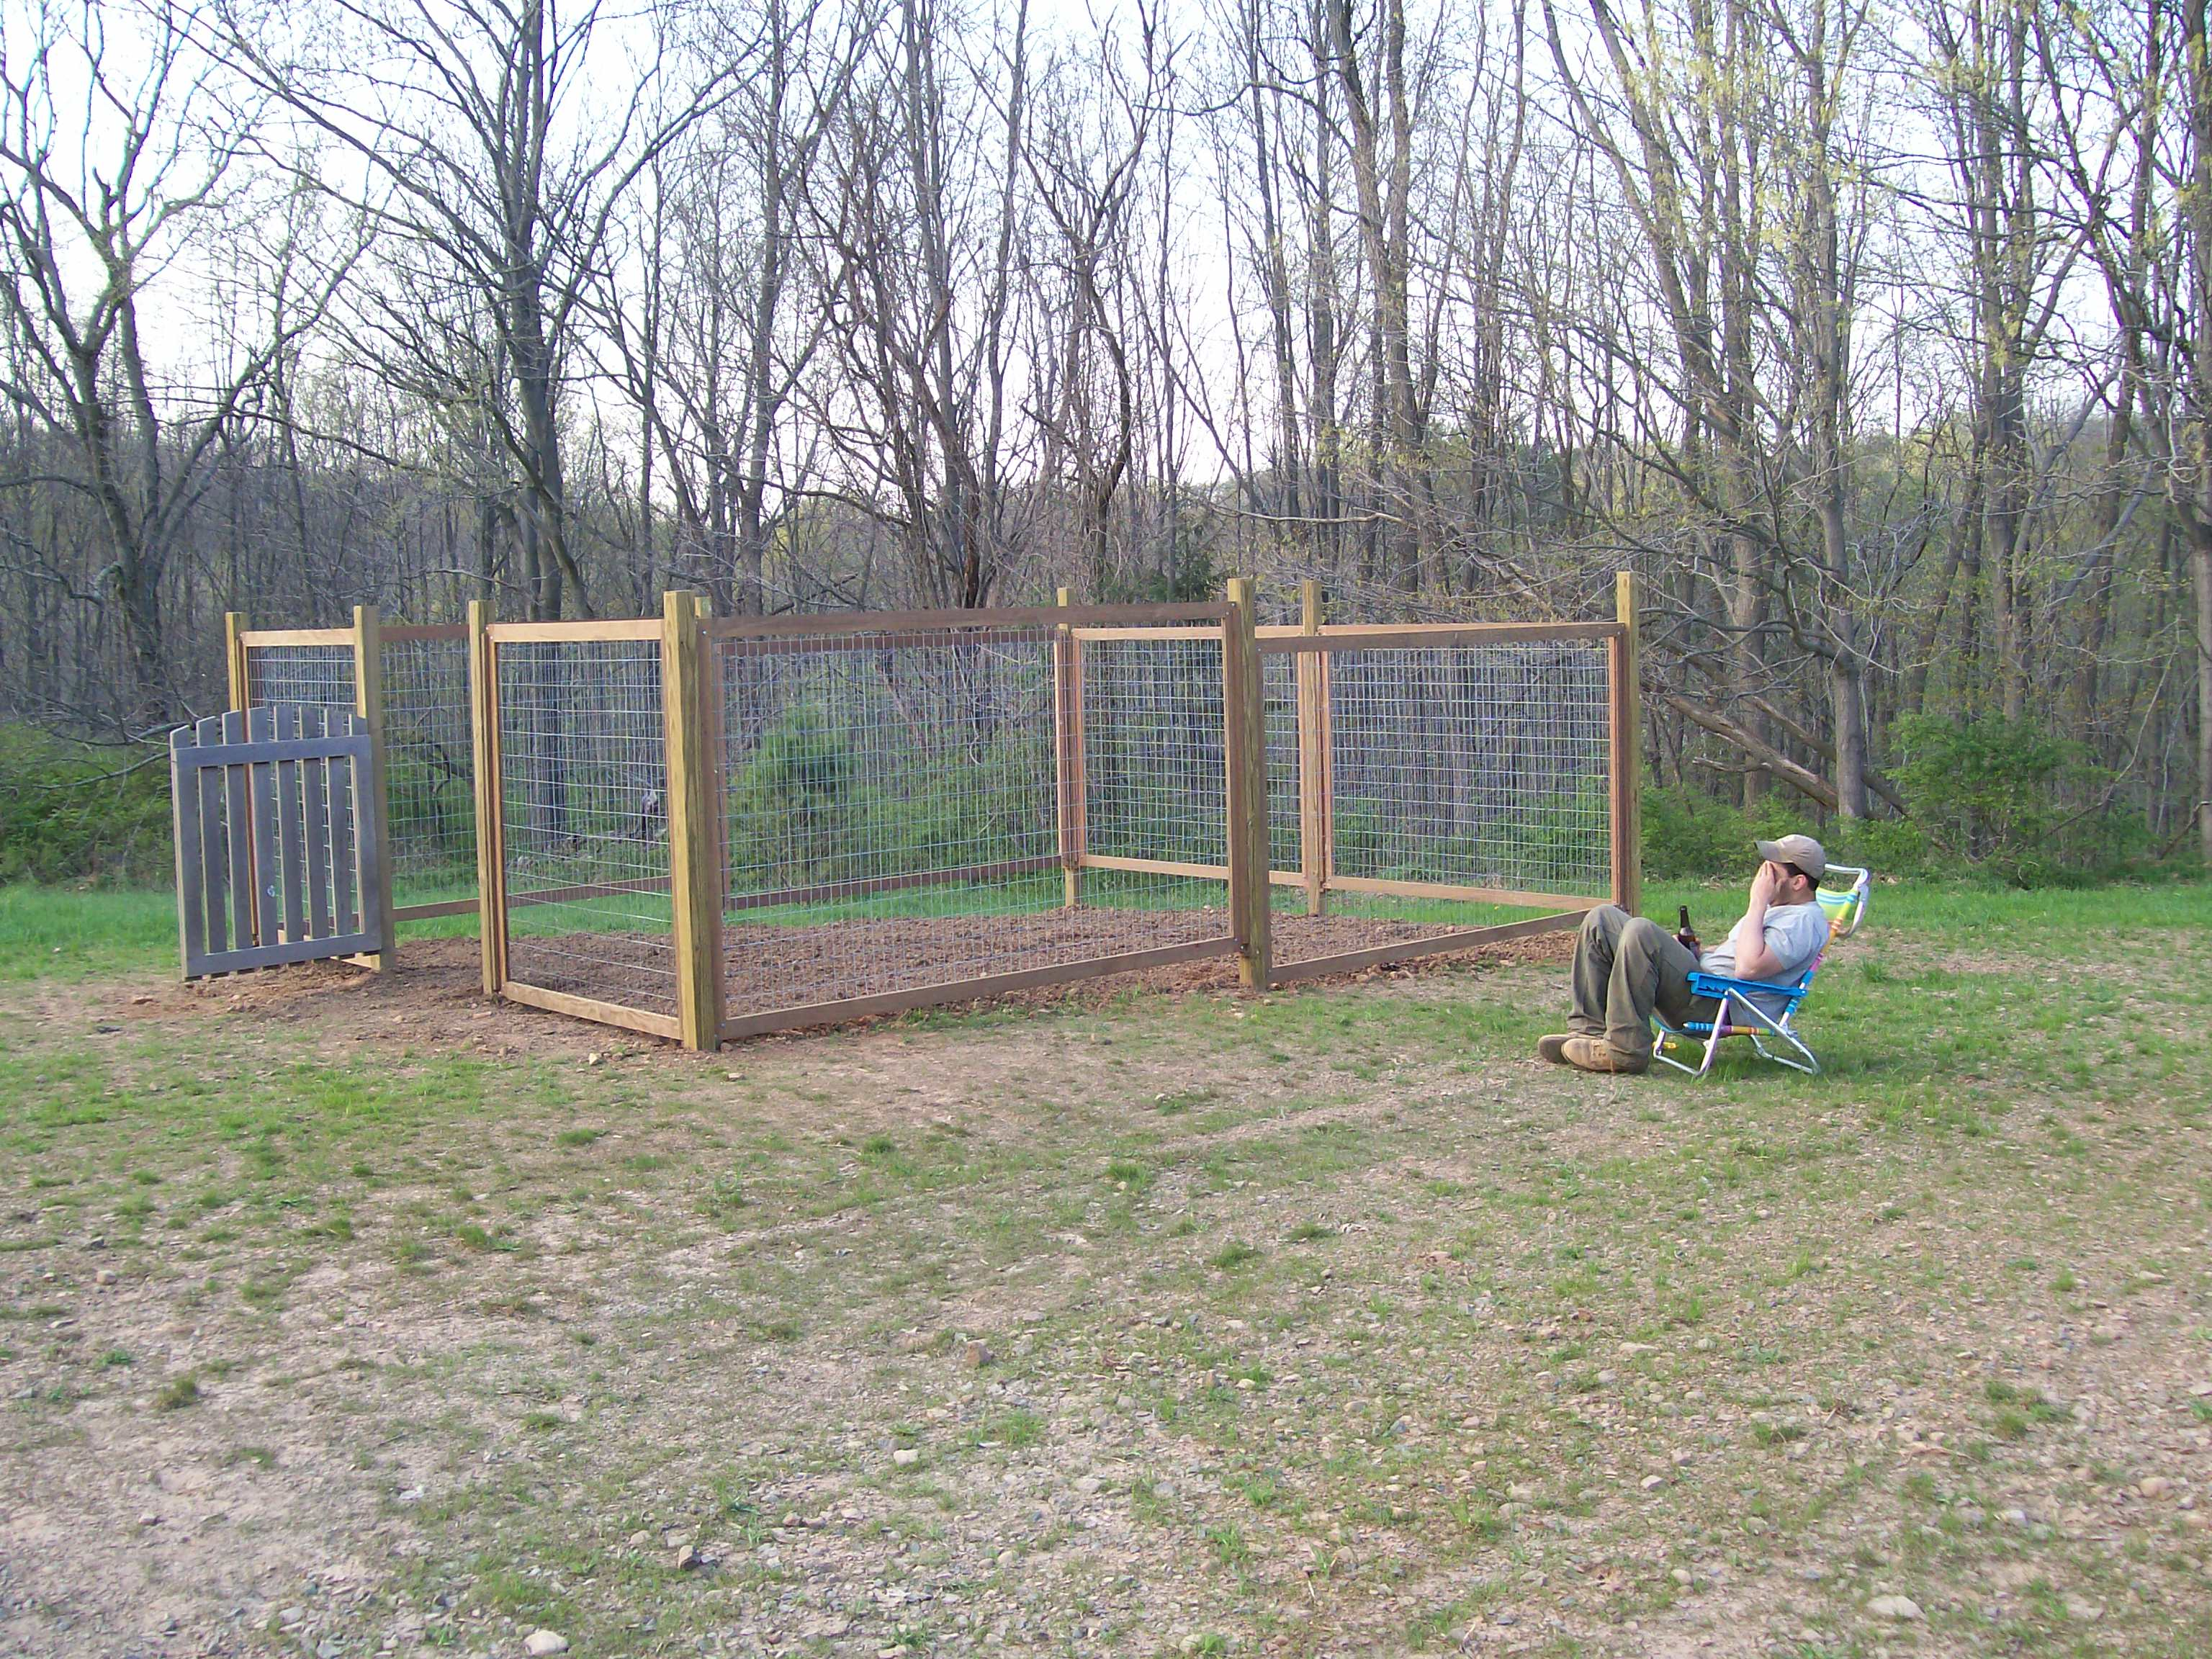 Goedkope Tuinafscheiding Fence For Our Vegetable Garden Farmer 39s Daughter